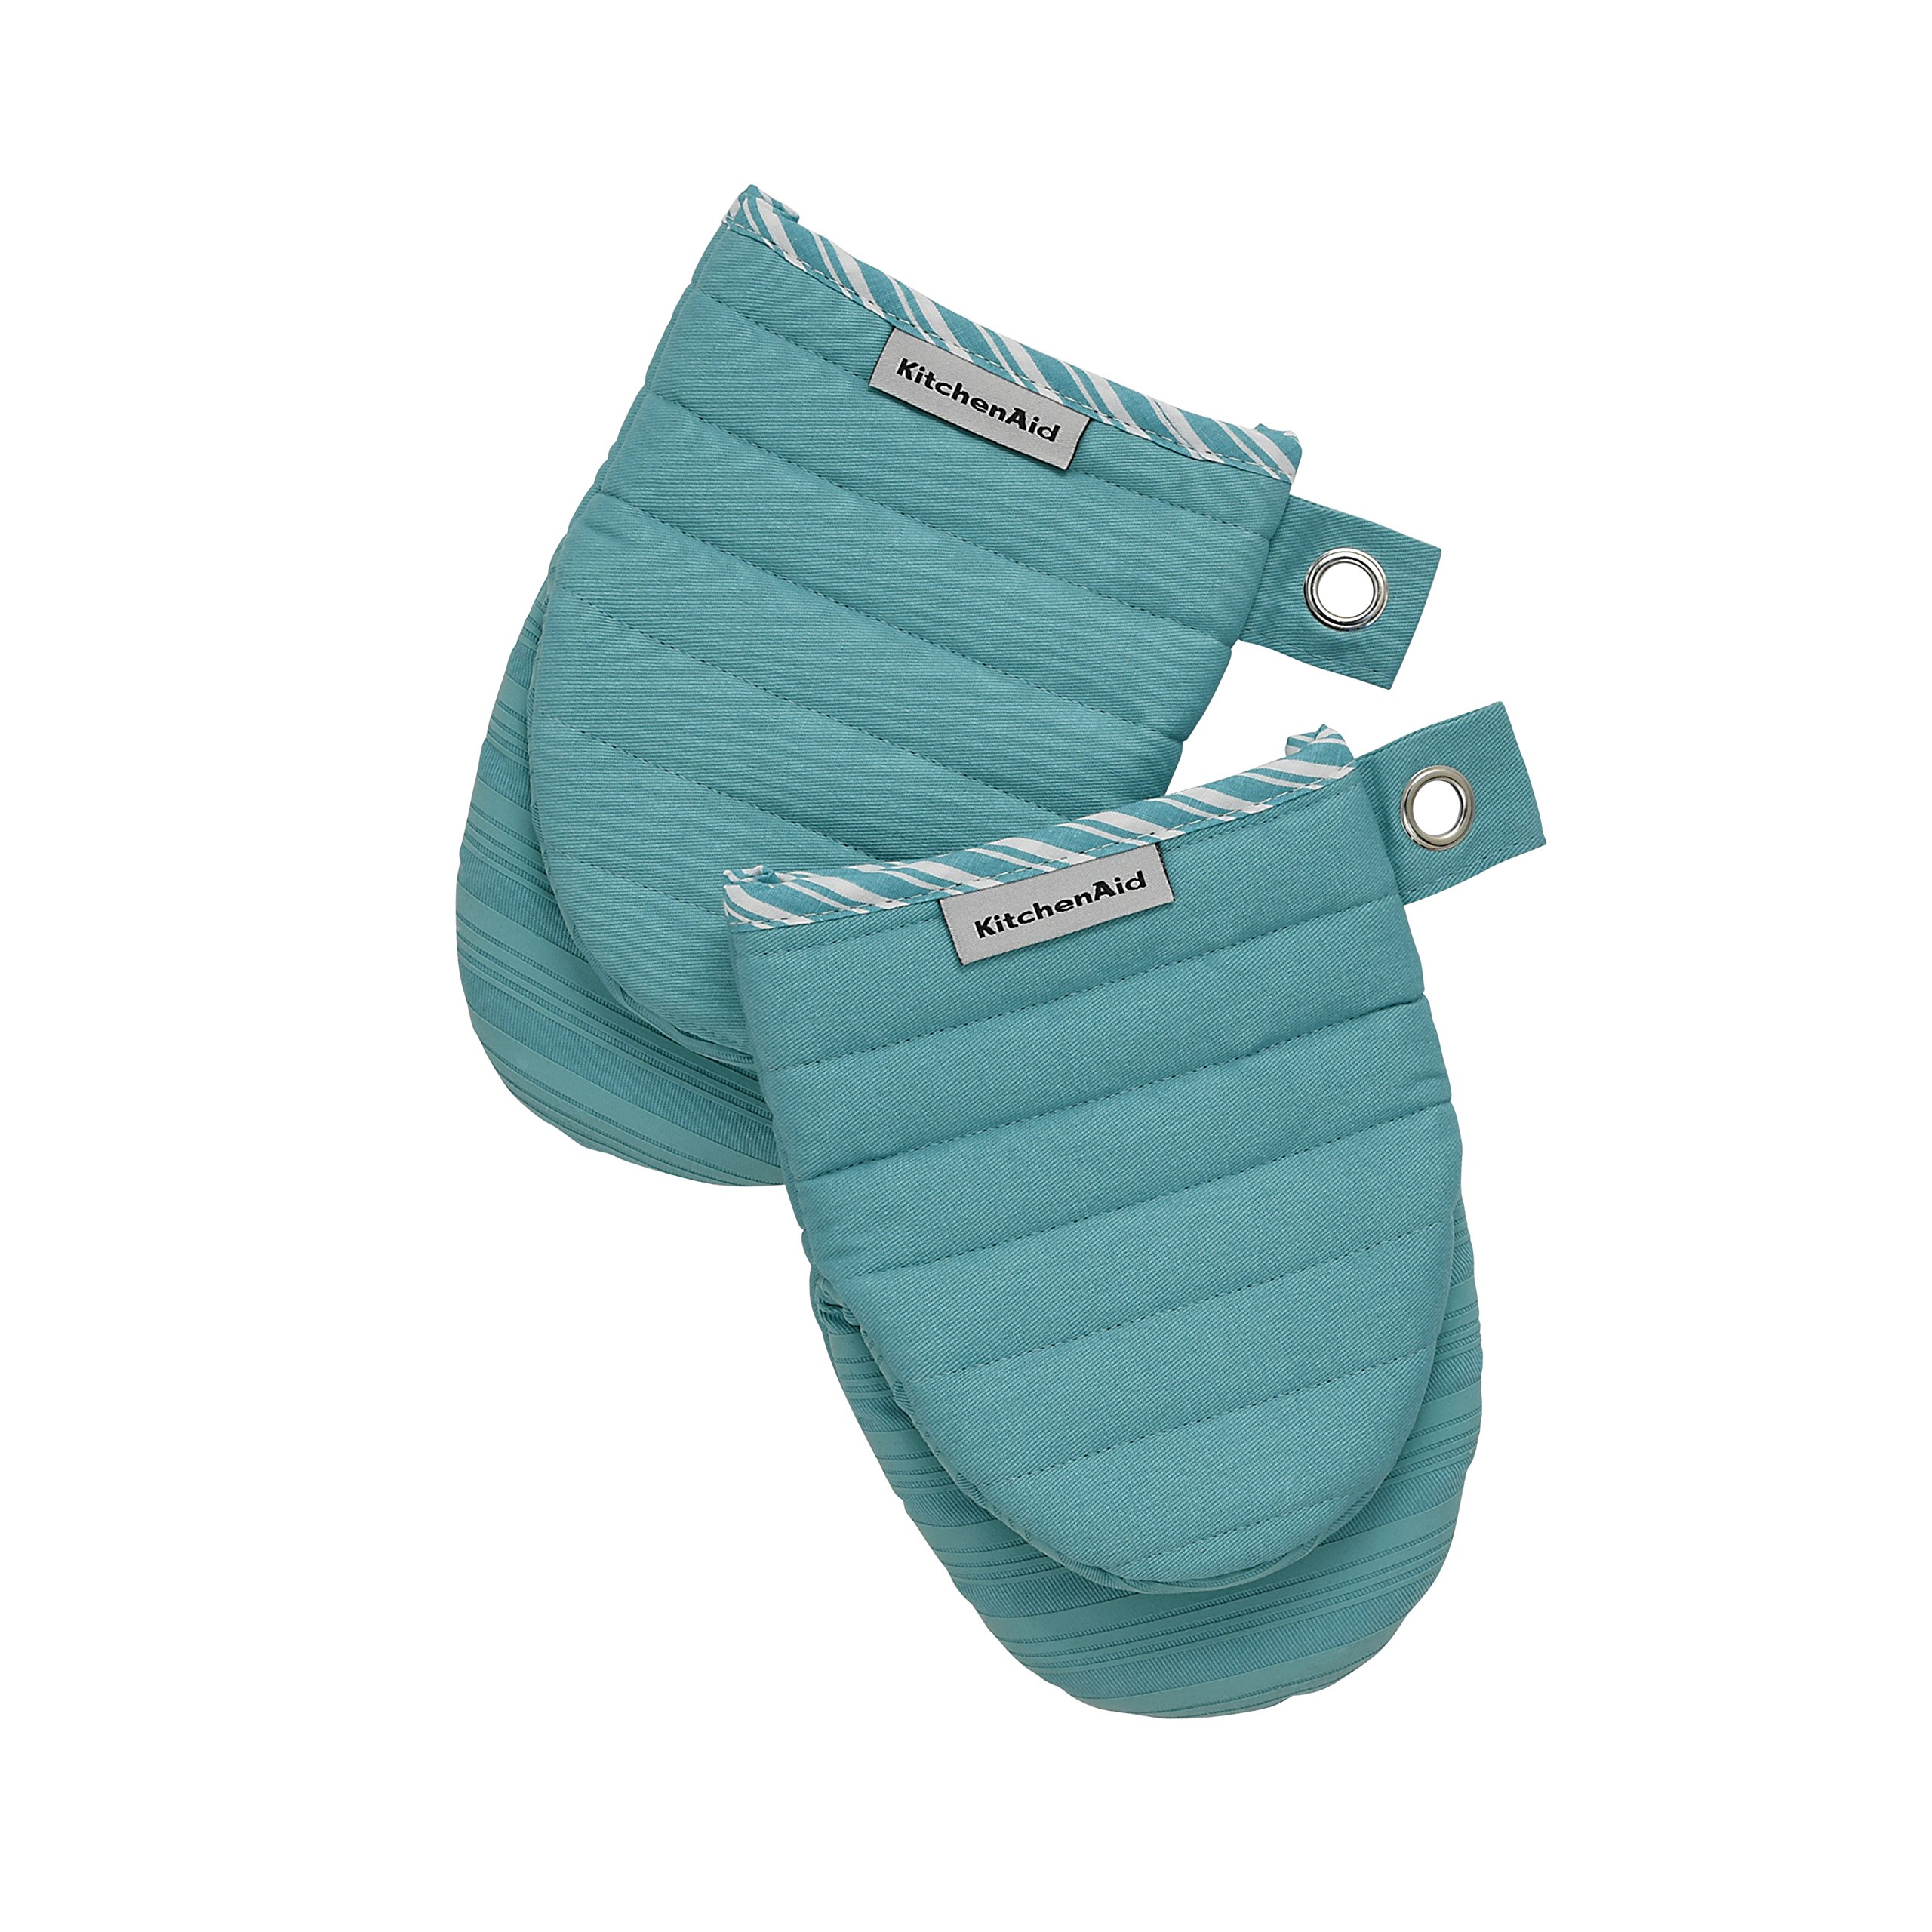 Kitchenaid Silicone Mini Mitt Oven, ONE SIZE, Aqua